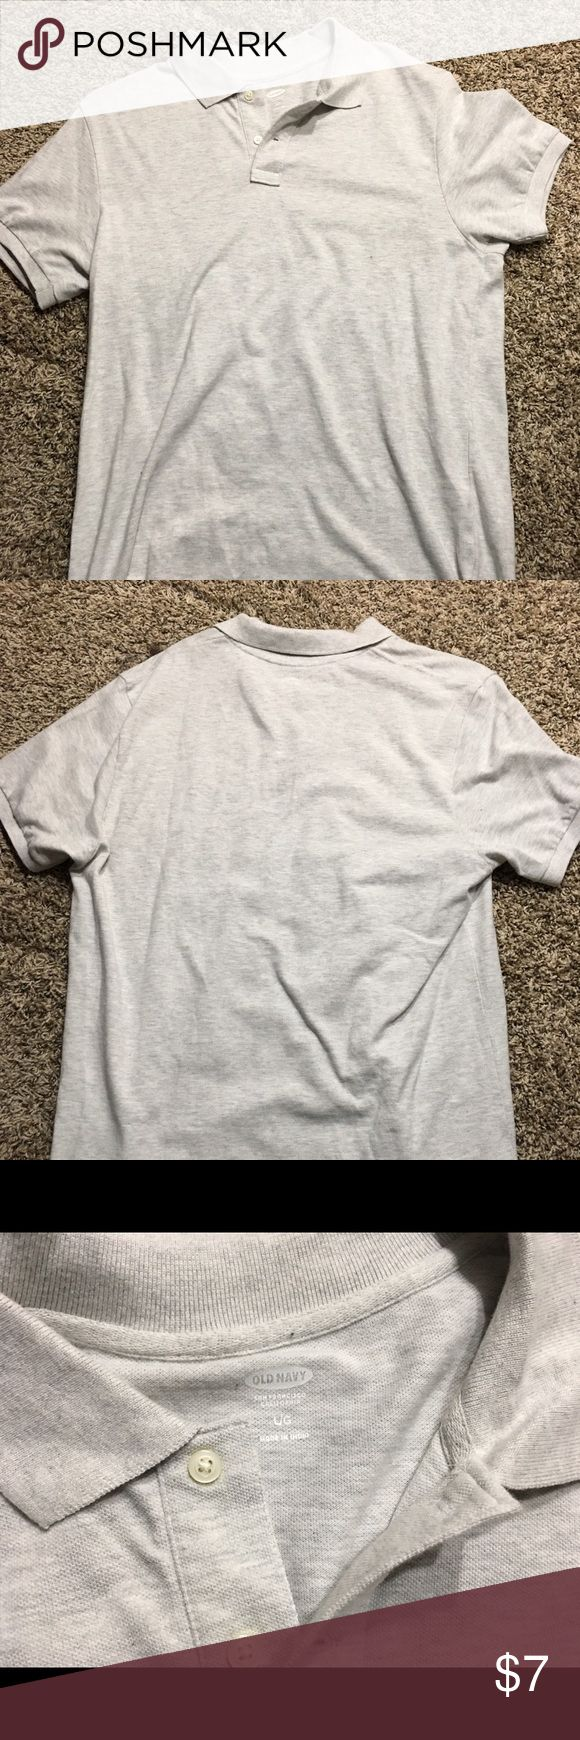 Men's Old Navy Light Grey Polo Shirt Large Old Navy polo shirt from 2015, only worn once and in great condition! Old Navy Shirts Polos